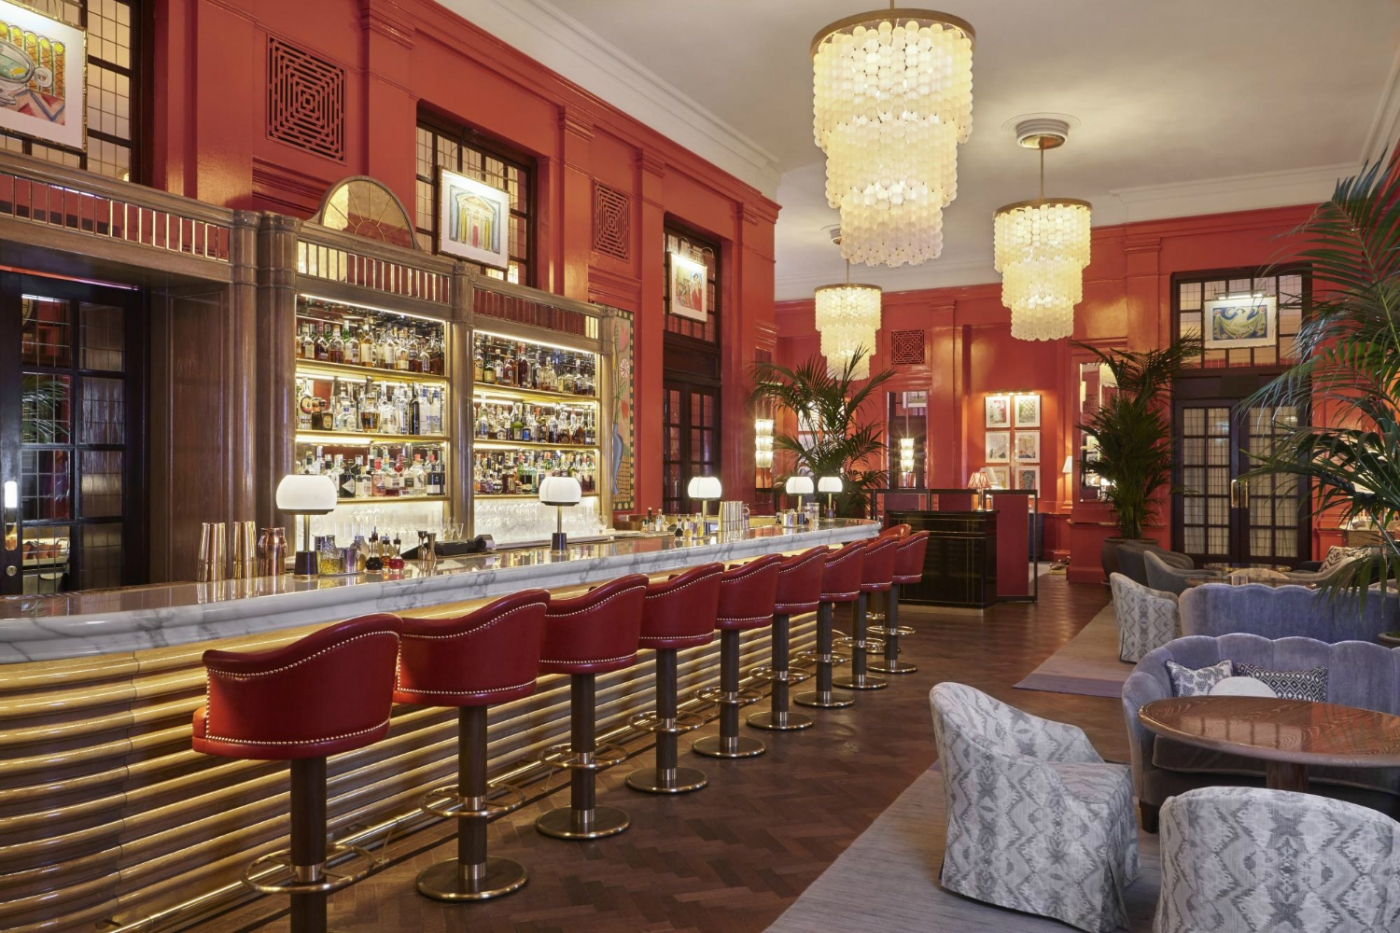 martin brudnizki The Coral Room – A Vibrant Grand Salon Bar Designed By Martin Brudnizki featured 1400x933